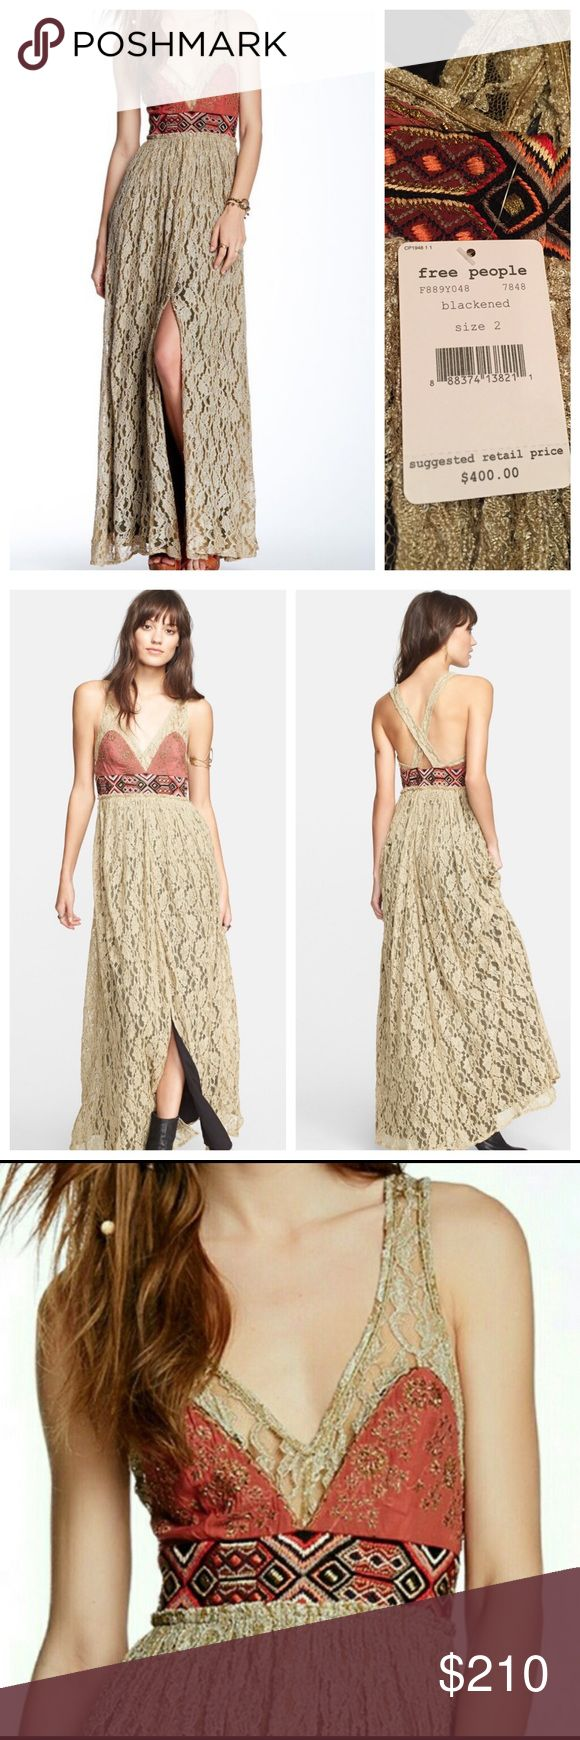 """Free people crushed gold lace maxi party dress This is an exquisite dress and the picture doesn't do it justice. Lightweight threads craft a floor-sweeping maxi dress embellished with gold lace embroidery at the sleeveless V-neck bodice and a woven geo-print band at the Empire waistline for a colorful contrast detail. Metallic stitching, crochet overlay, beaded detail, front slit, back crisscross detail, side zip and hook closure, lined. Length: 58""""; Bust: 32""""; Waist: 24.5"""" (Size 2). Free…"""